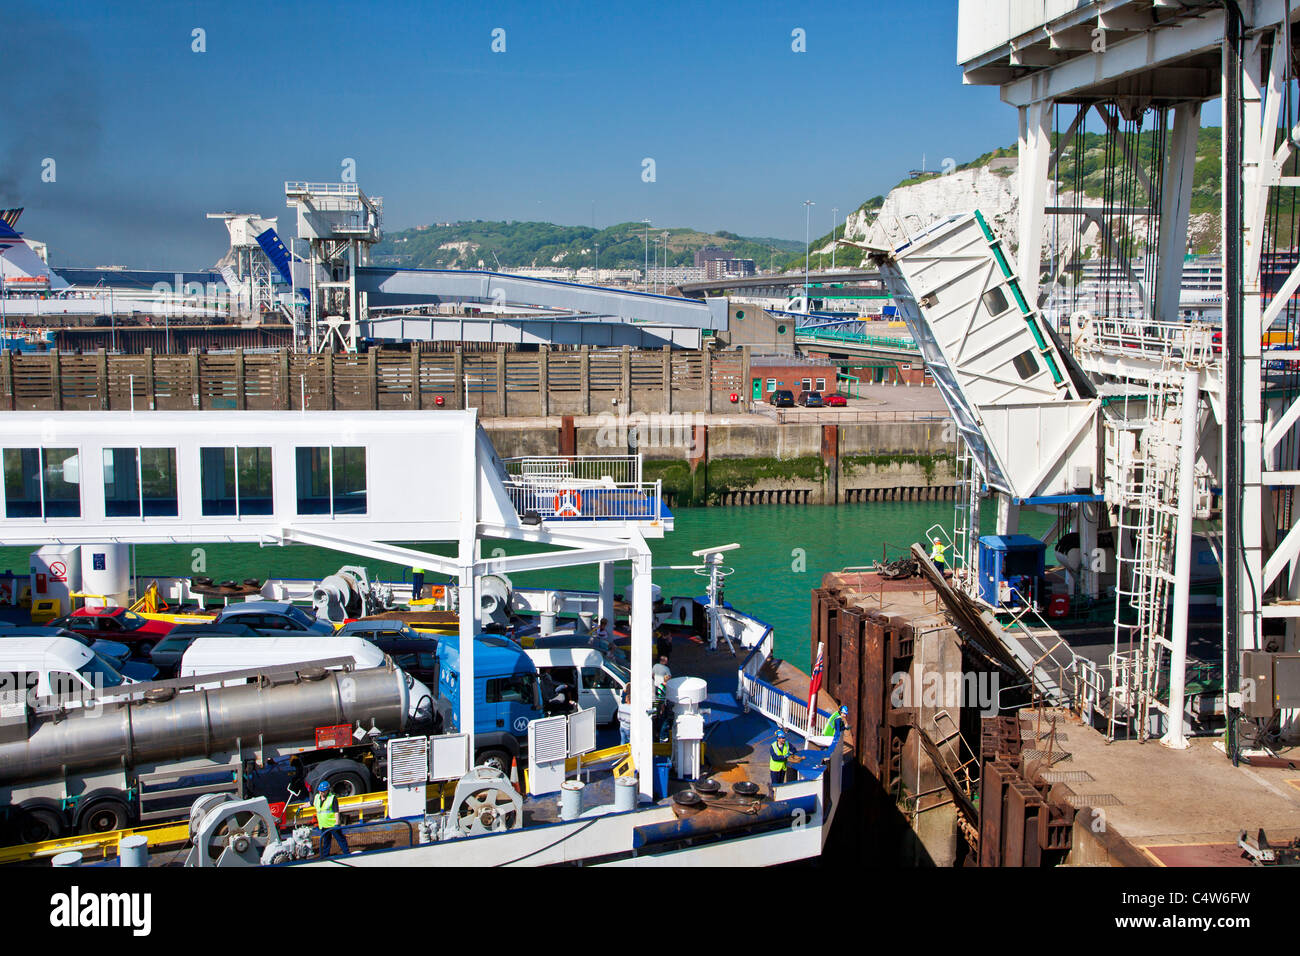 Cross channel car ferry docking at the port of Dover - Stock Image